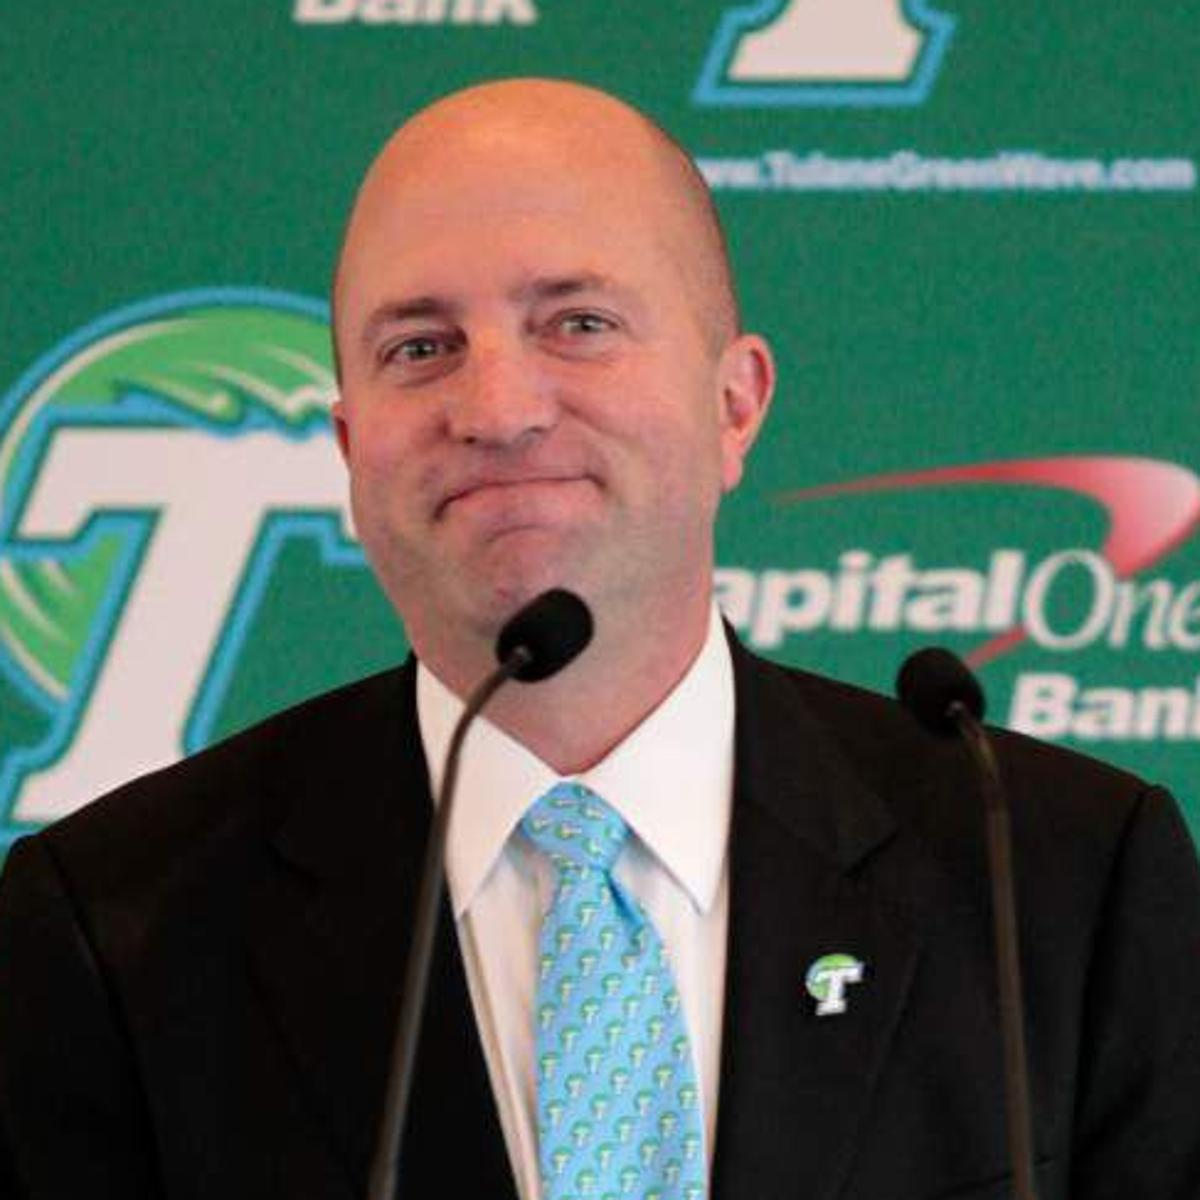 Tulane's back where it started after Big 12 expansion